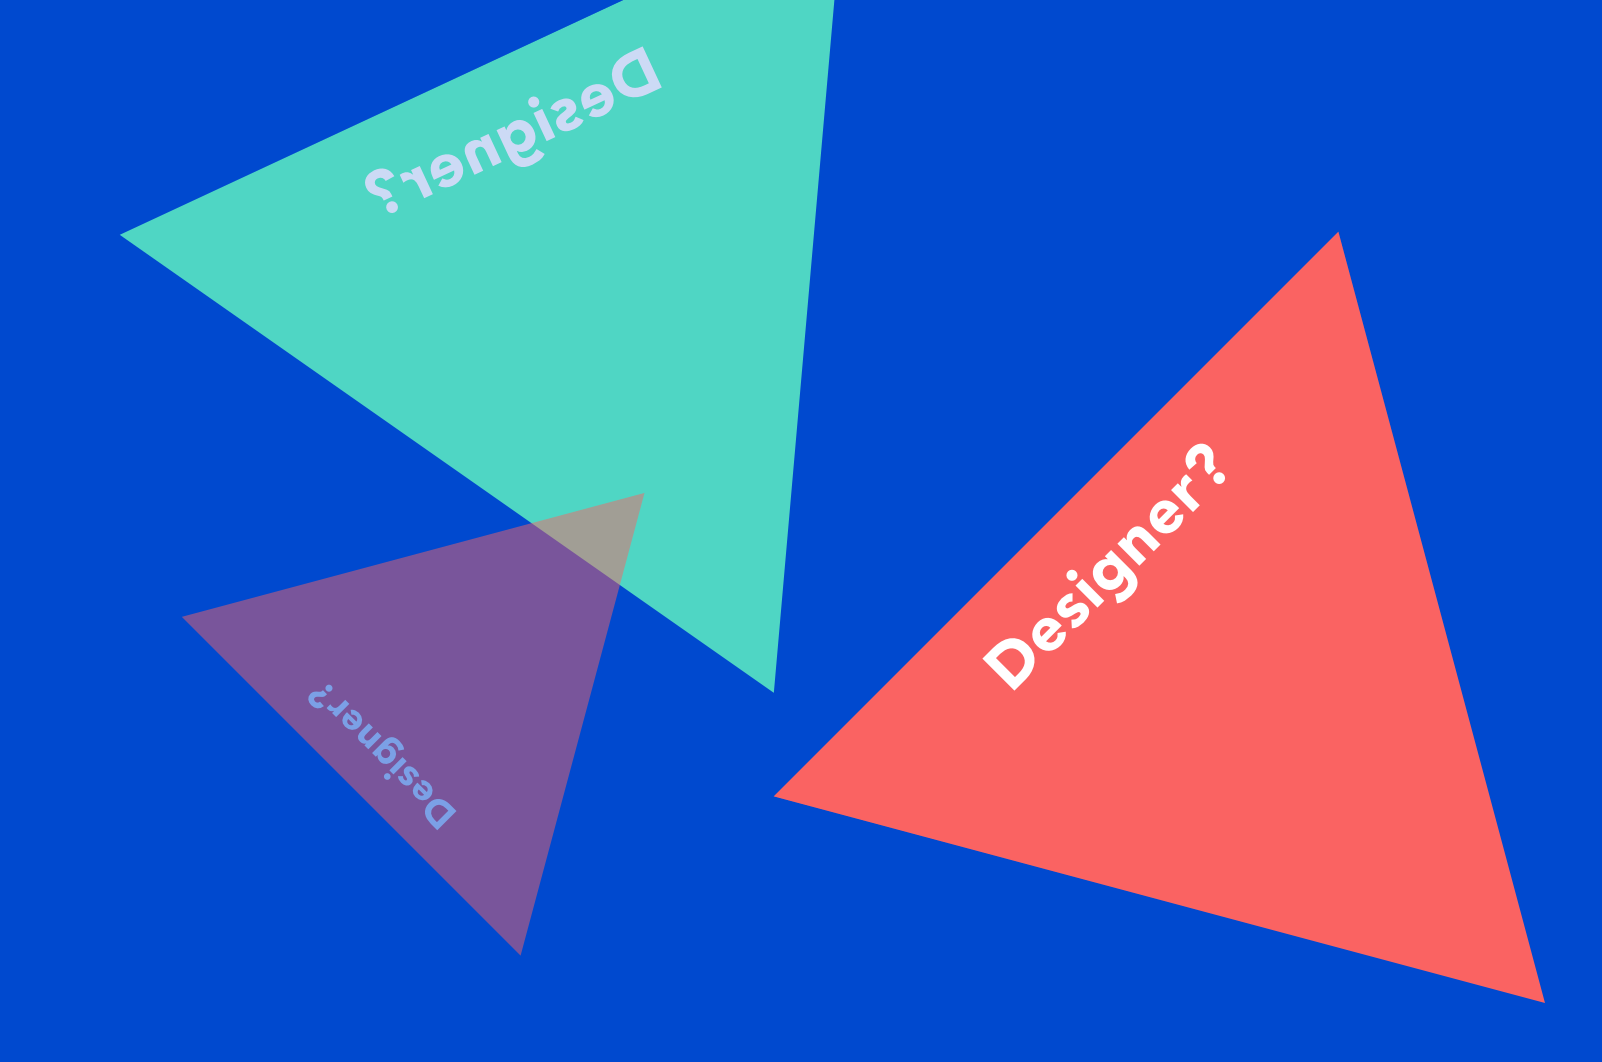 Triangle shaped designers